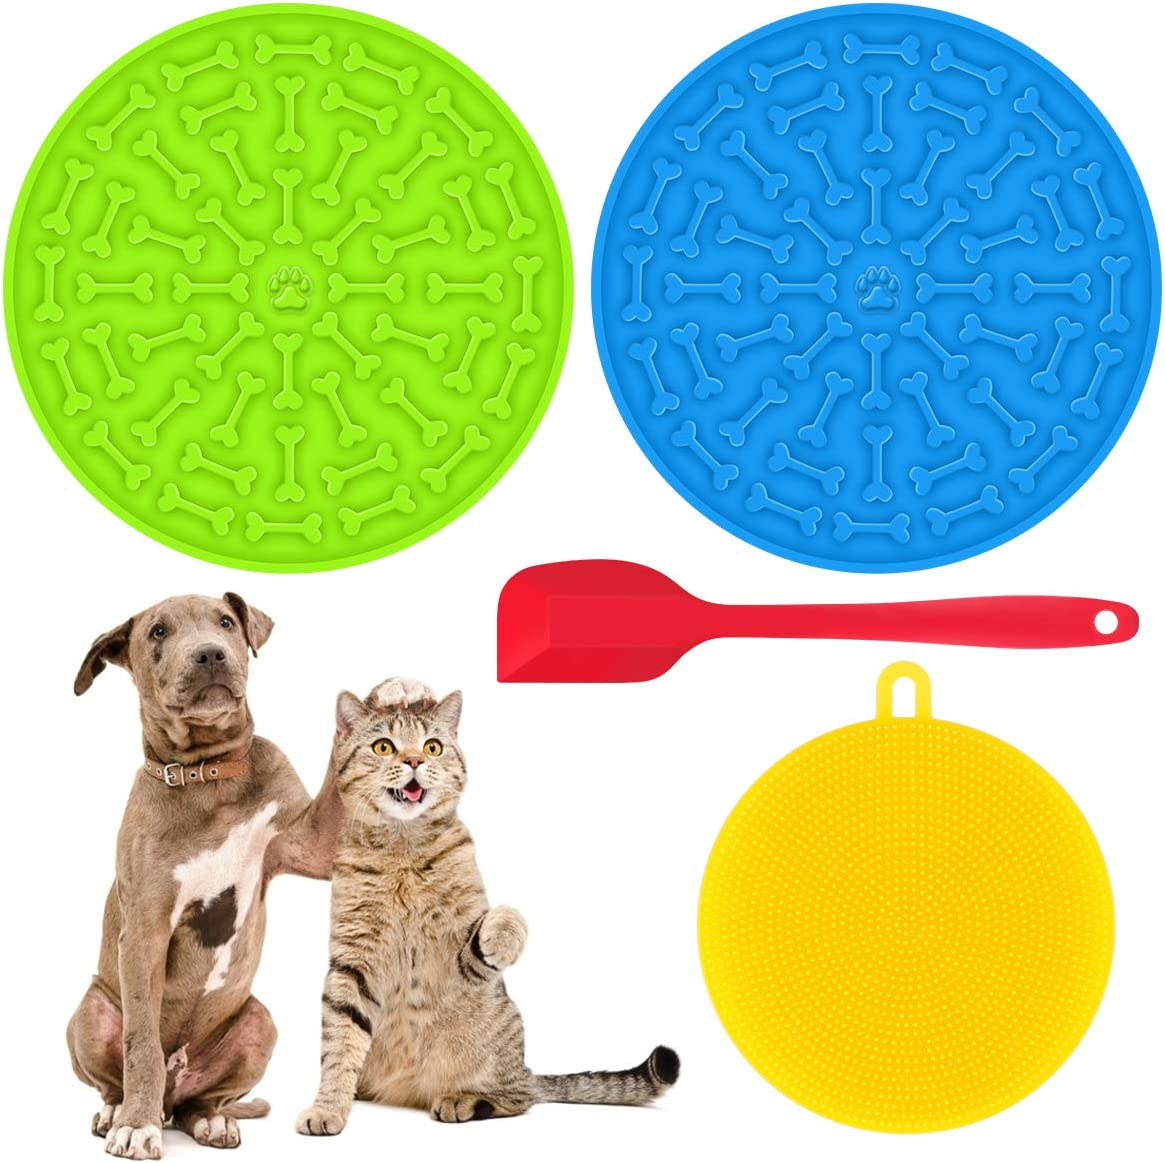 FPVERA Dog Lick Pad Slow Eating Dog Mat with Super Suction with Food Scraper with 37 Super Suctions to Wall for Pet Dog cat Bathing Grooming and Training